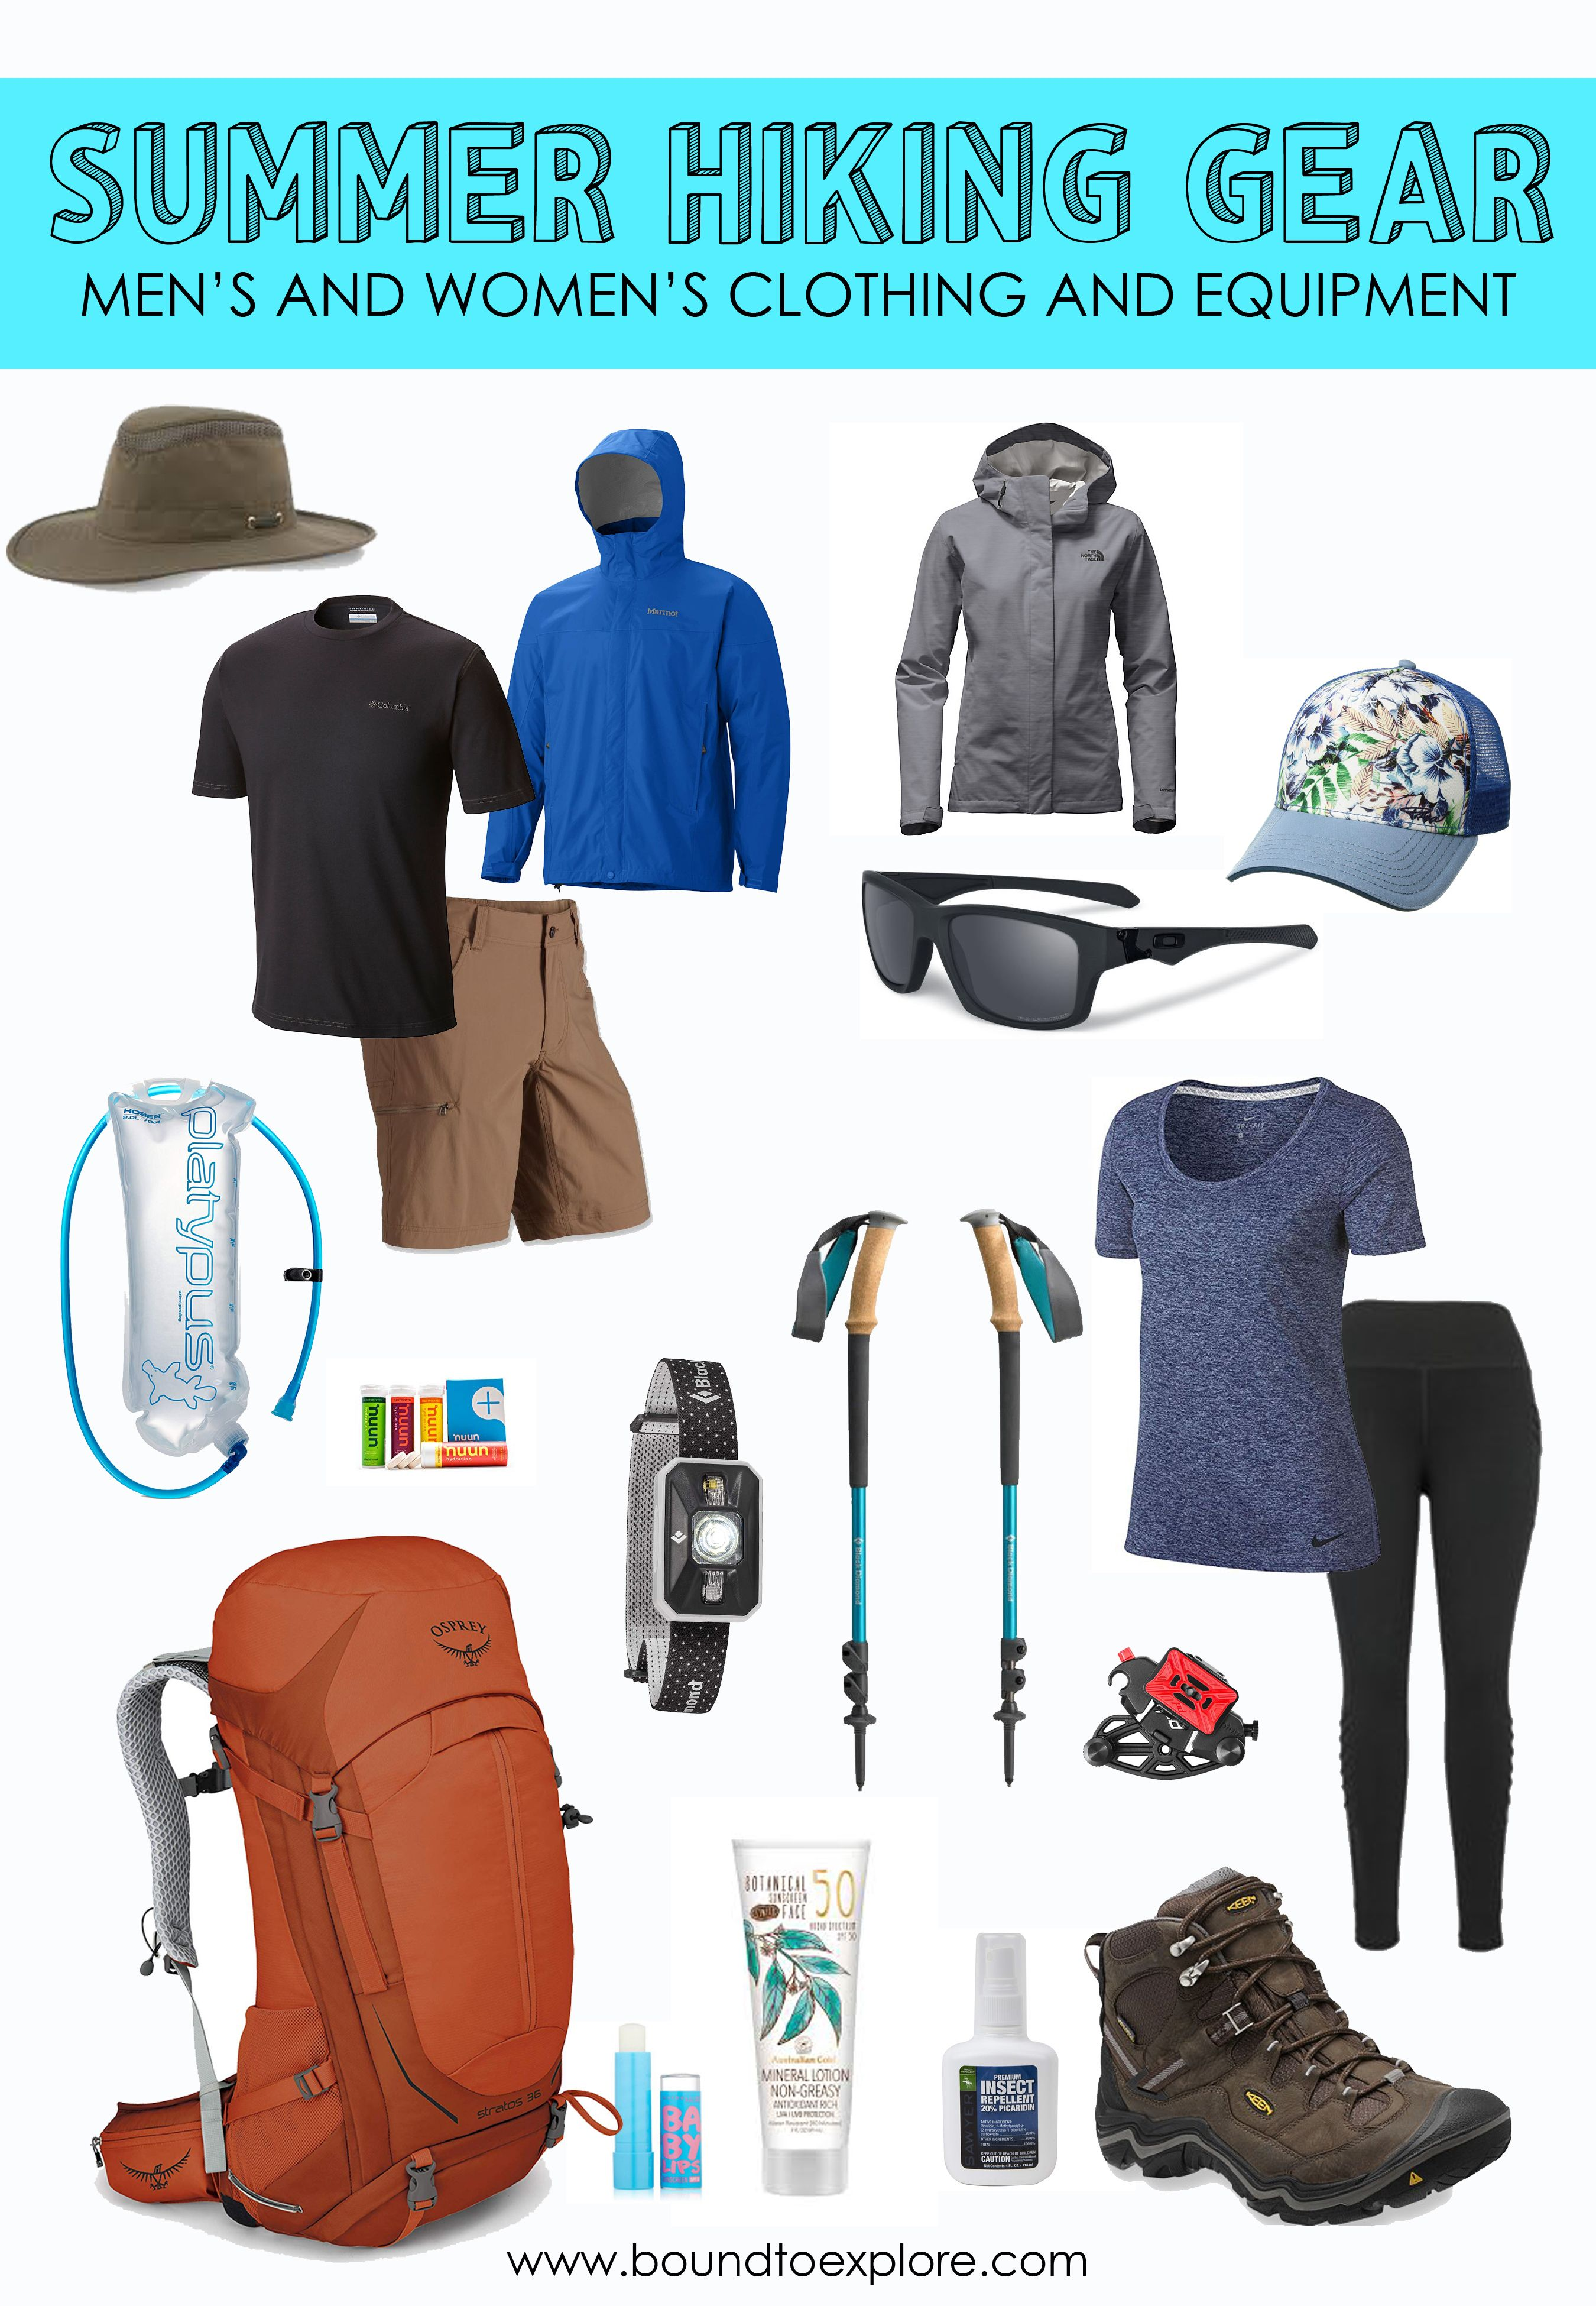 Essential Hiking Gear for Summer  Bound to Explore  Summer